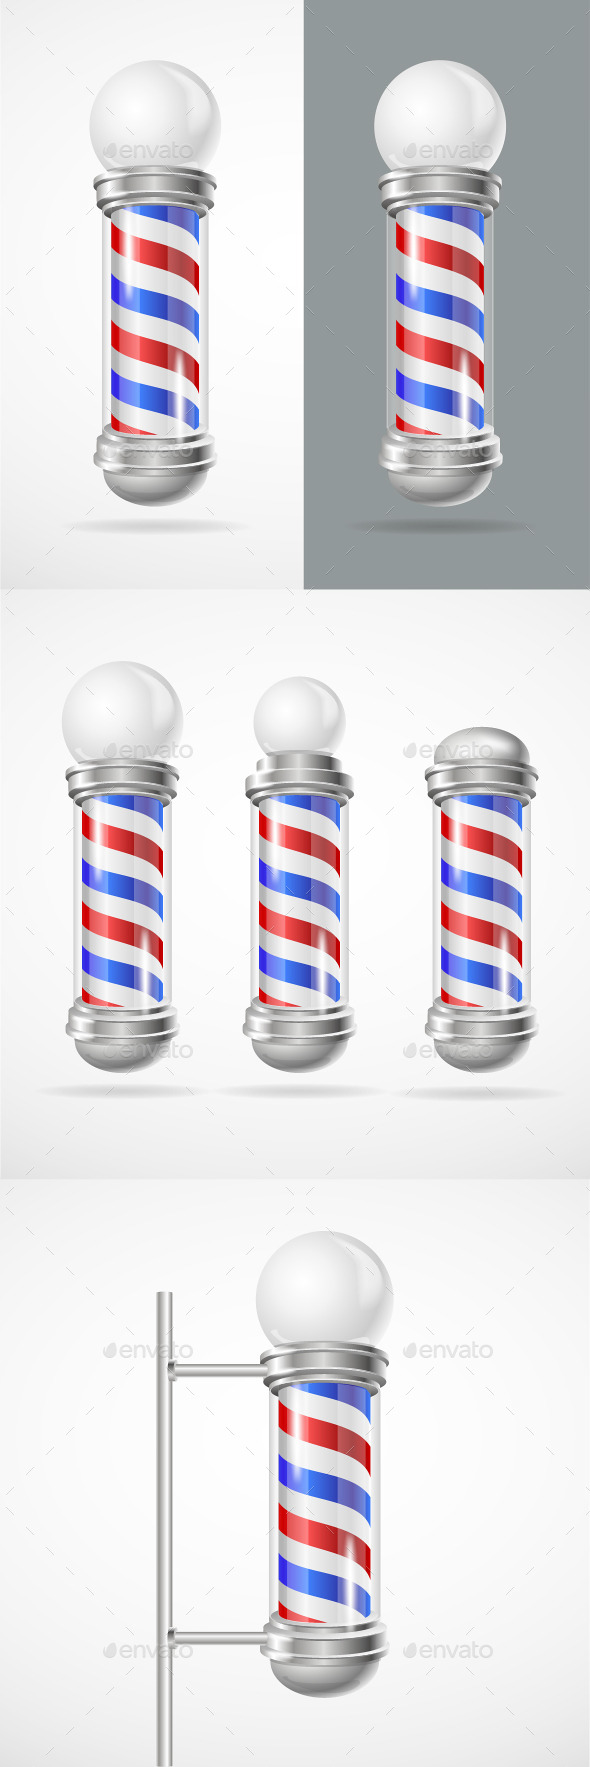 GraphicRiver Barber Shop Pole Set 11020477